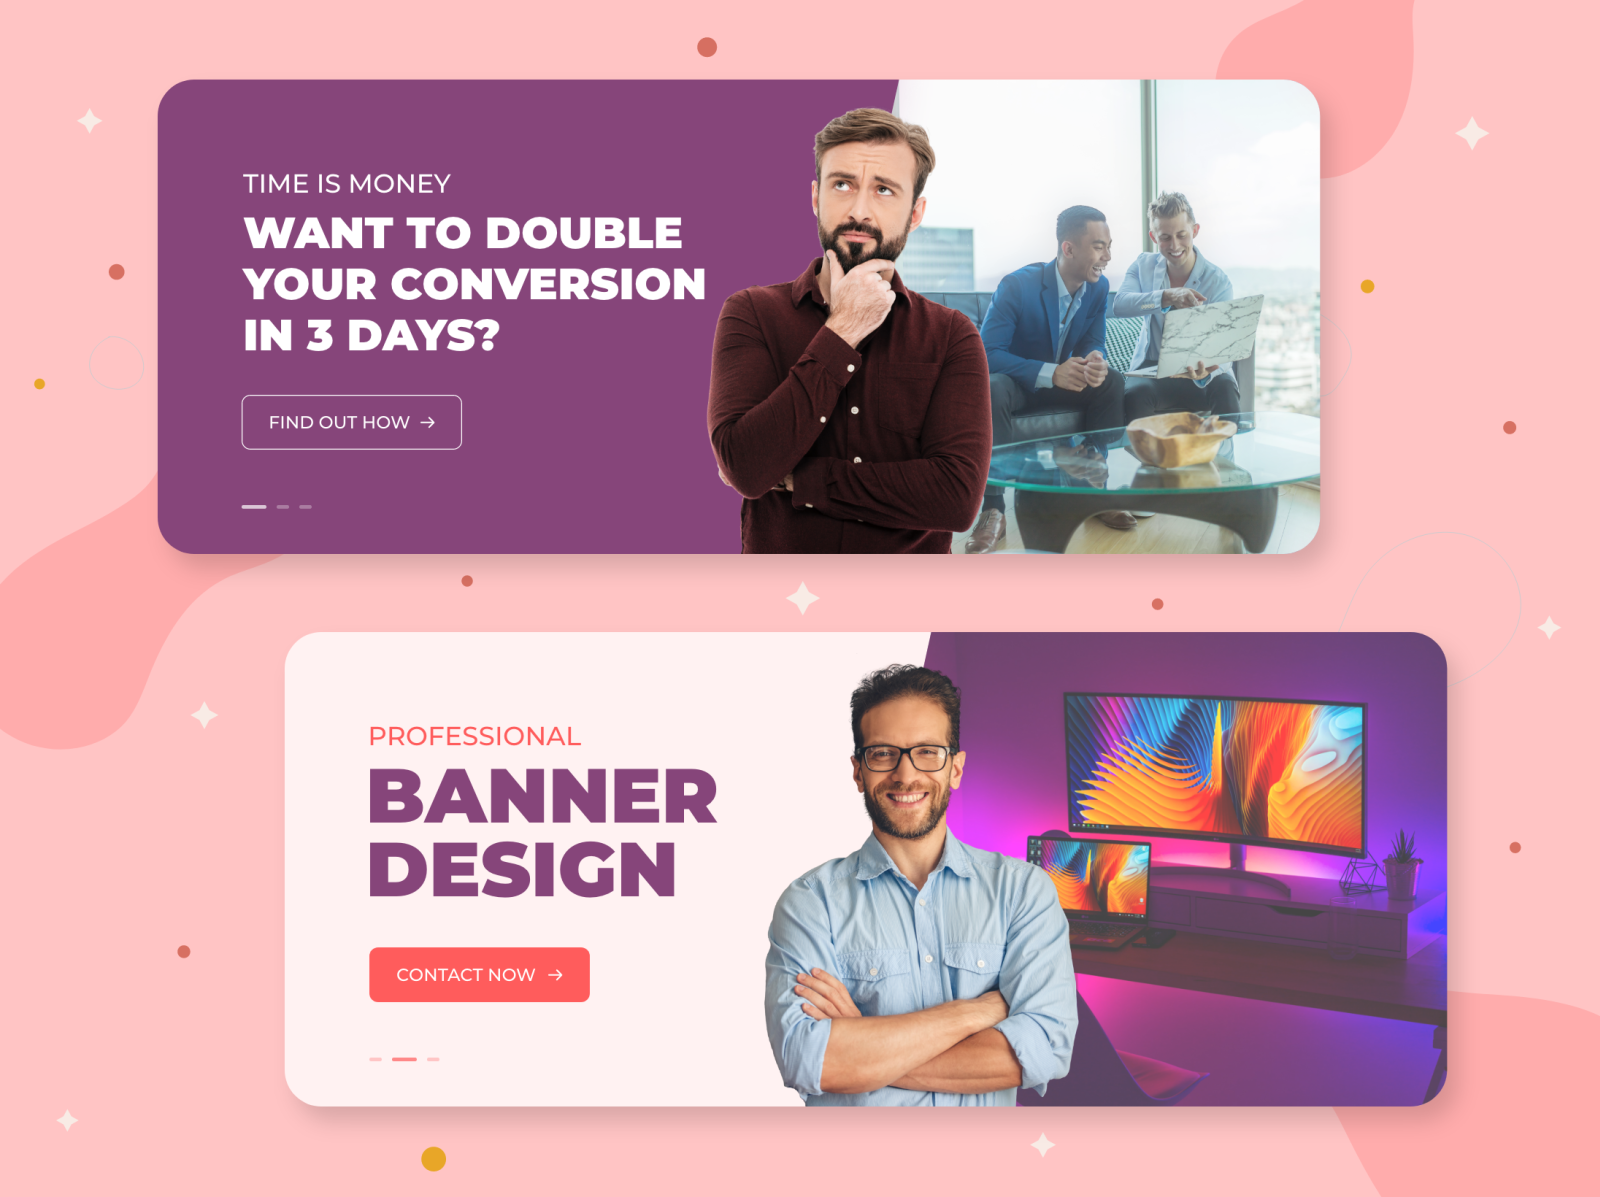 Pro Banner Design By Syed Abu Sayeed Shemon On Dribbble